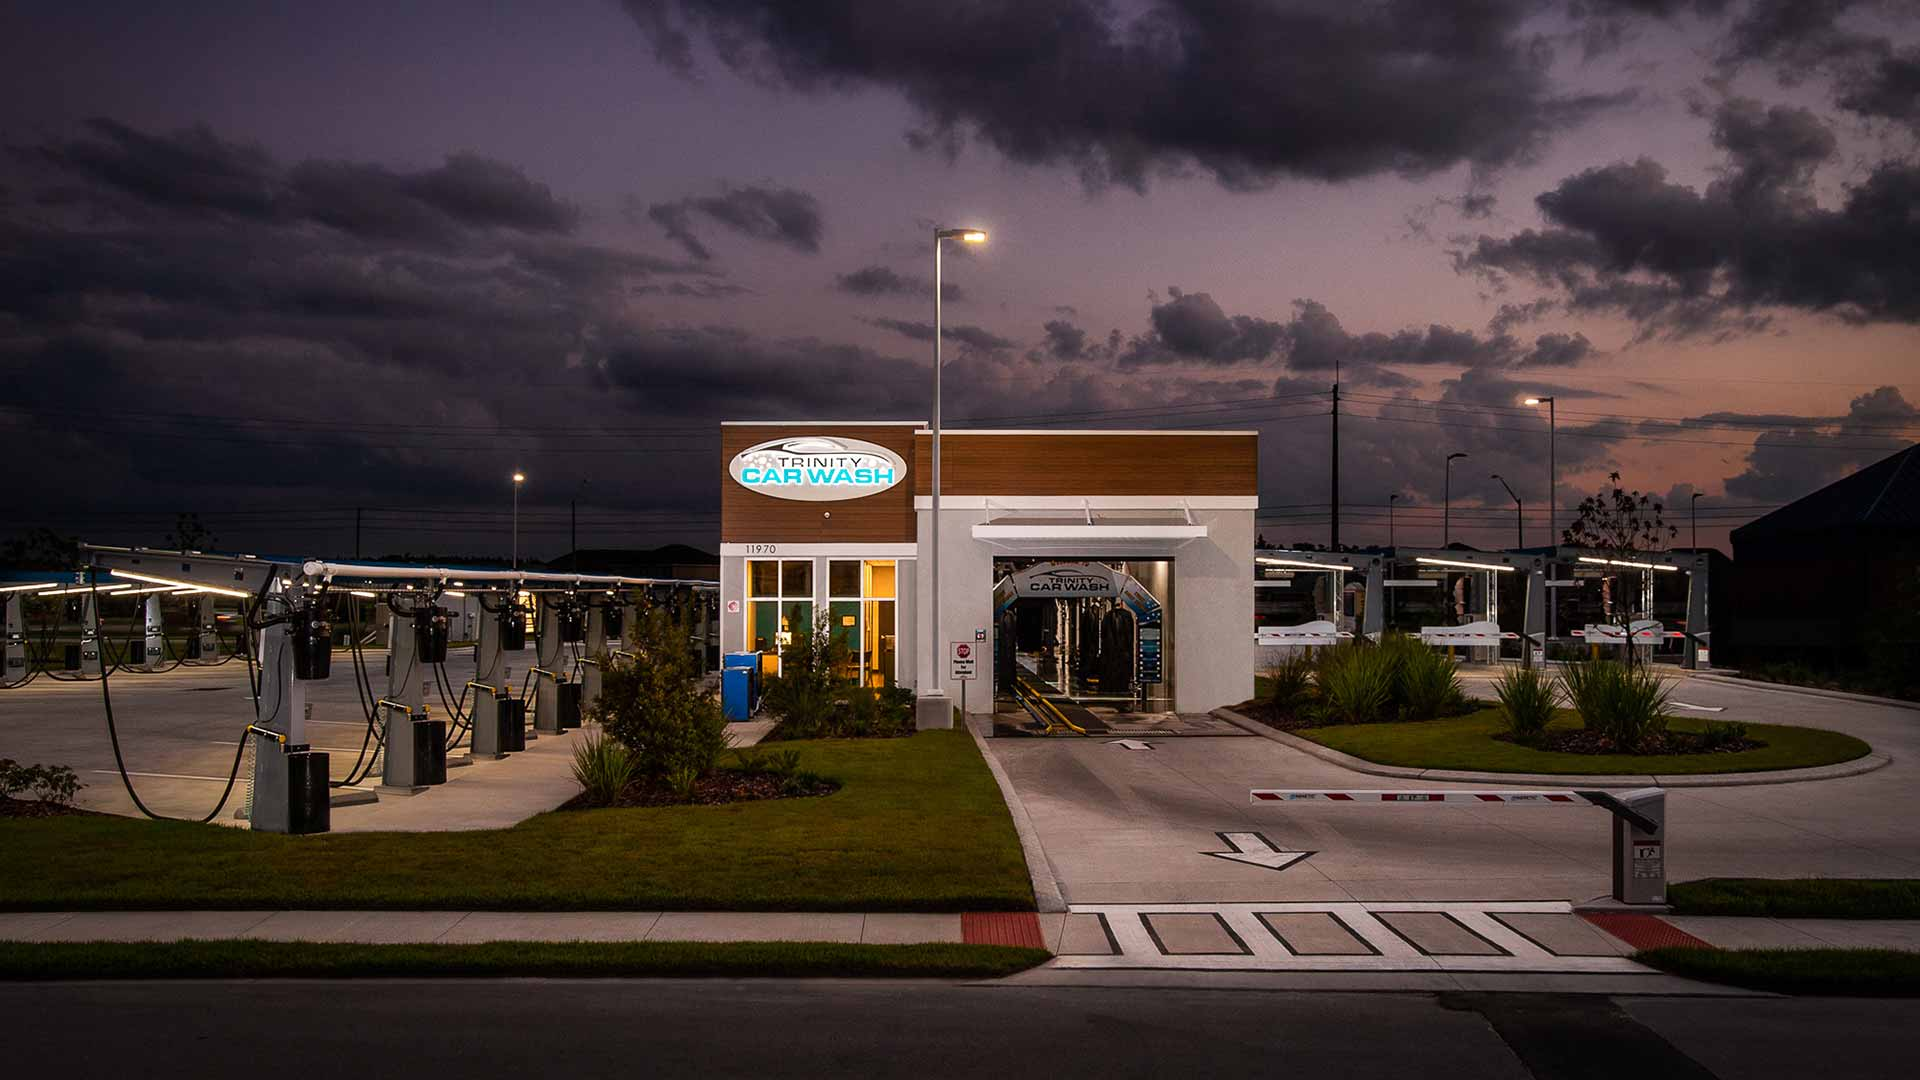 Photo of Trinity Car Wash by Creative Convenience at sunset.